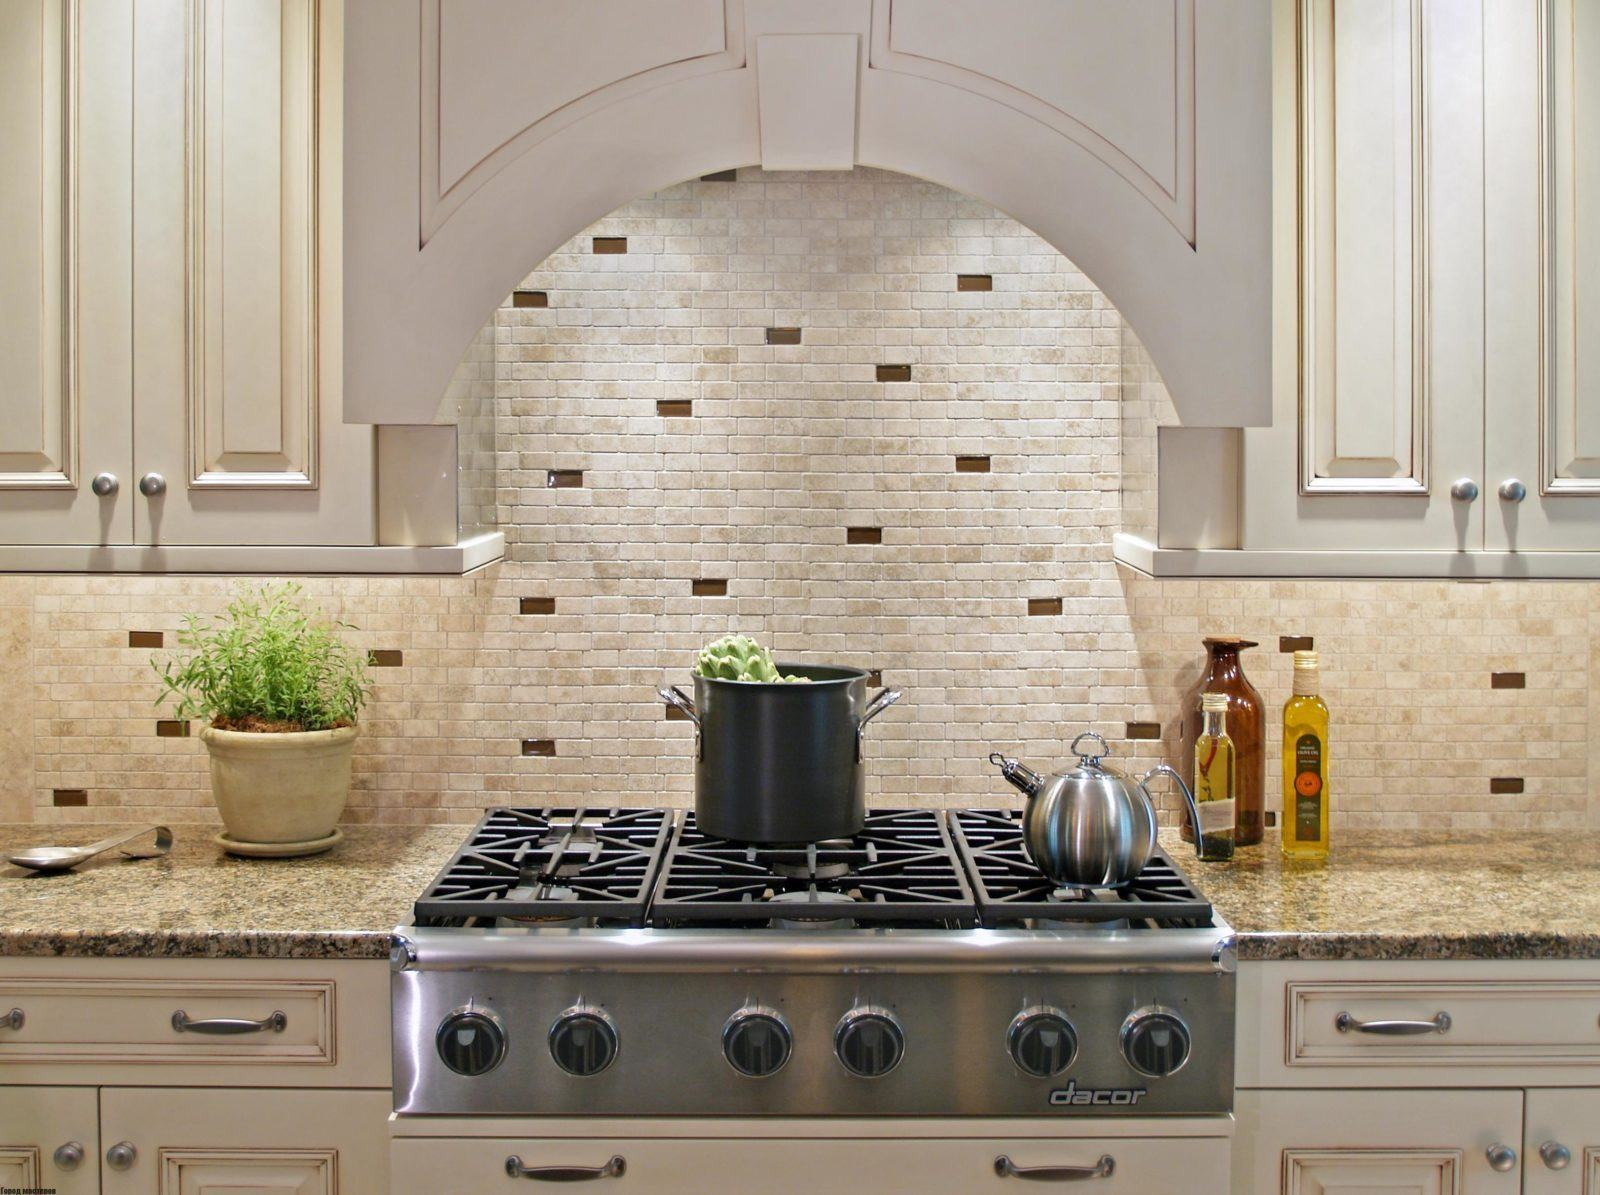 Provence designed kitchen with arched hood and mosaic at the hob